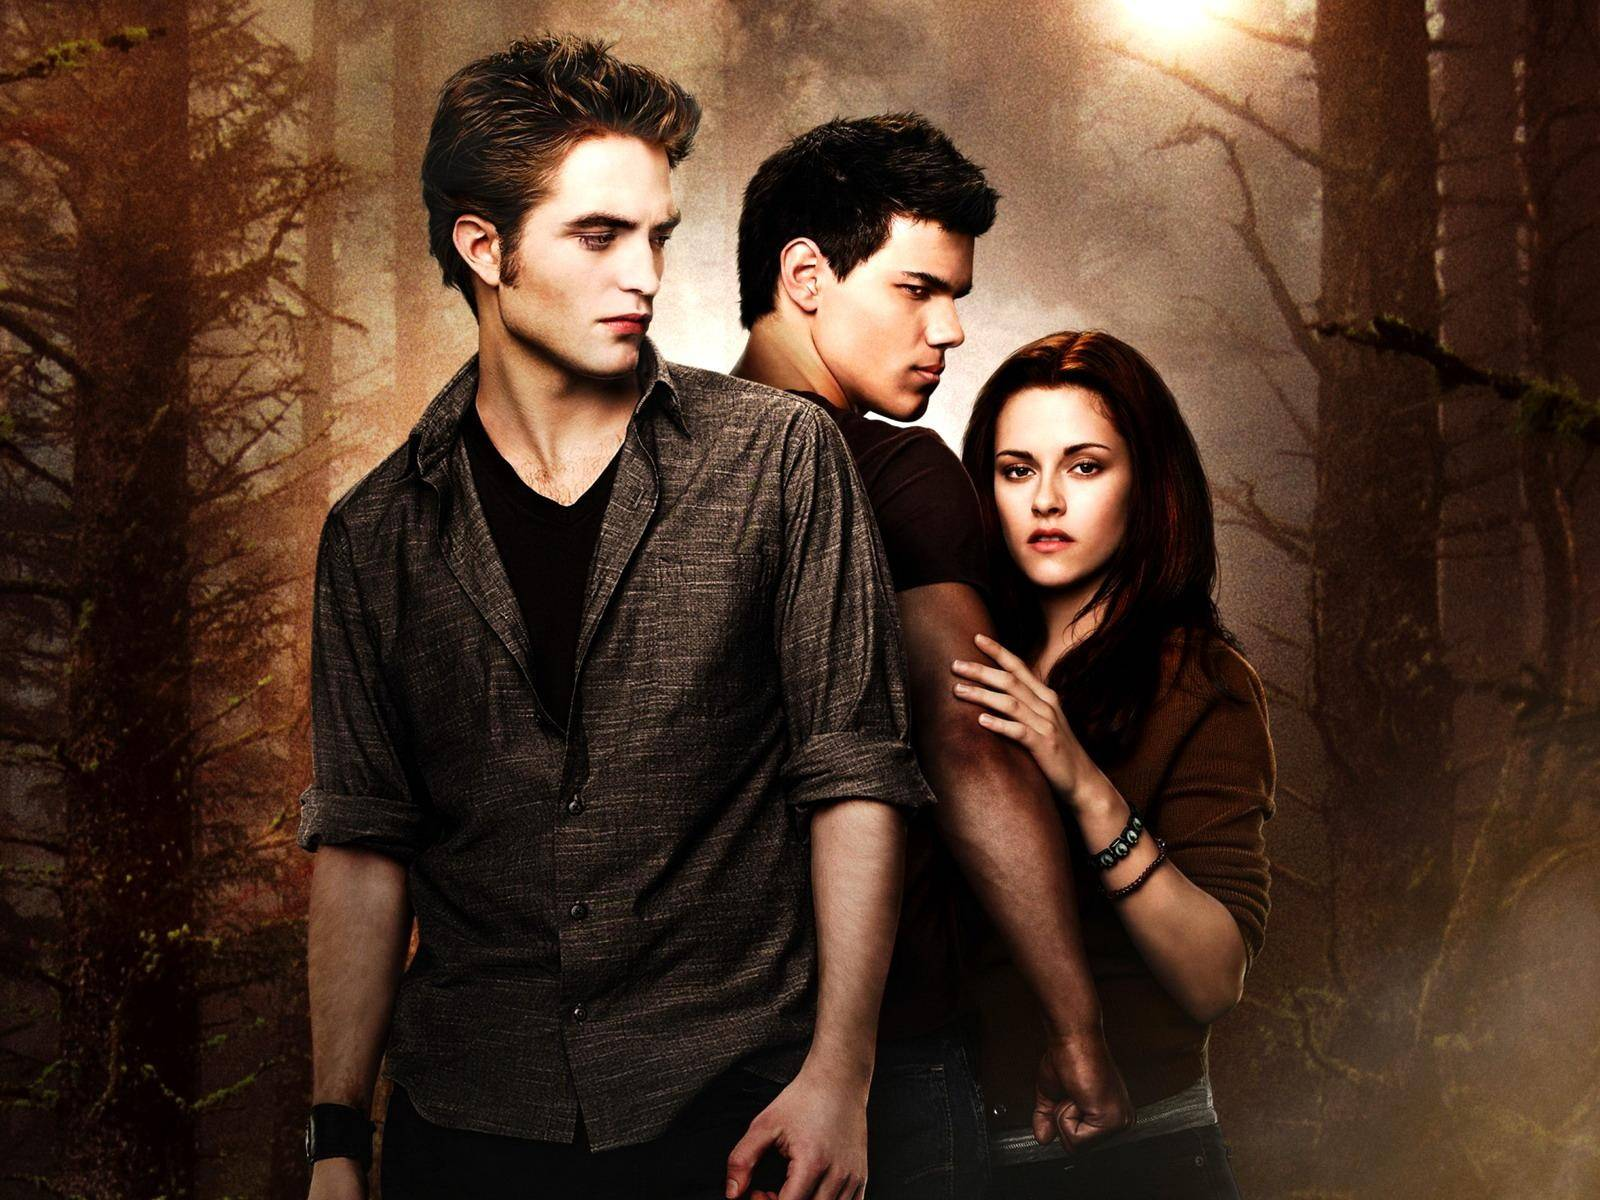 HD Jacob Twilight Backgrounds 1600x1200